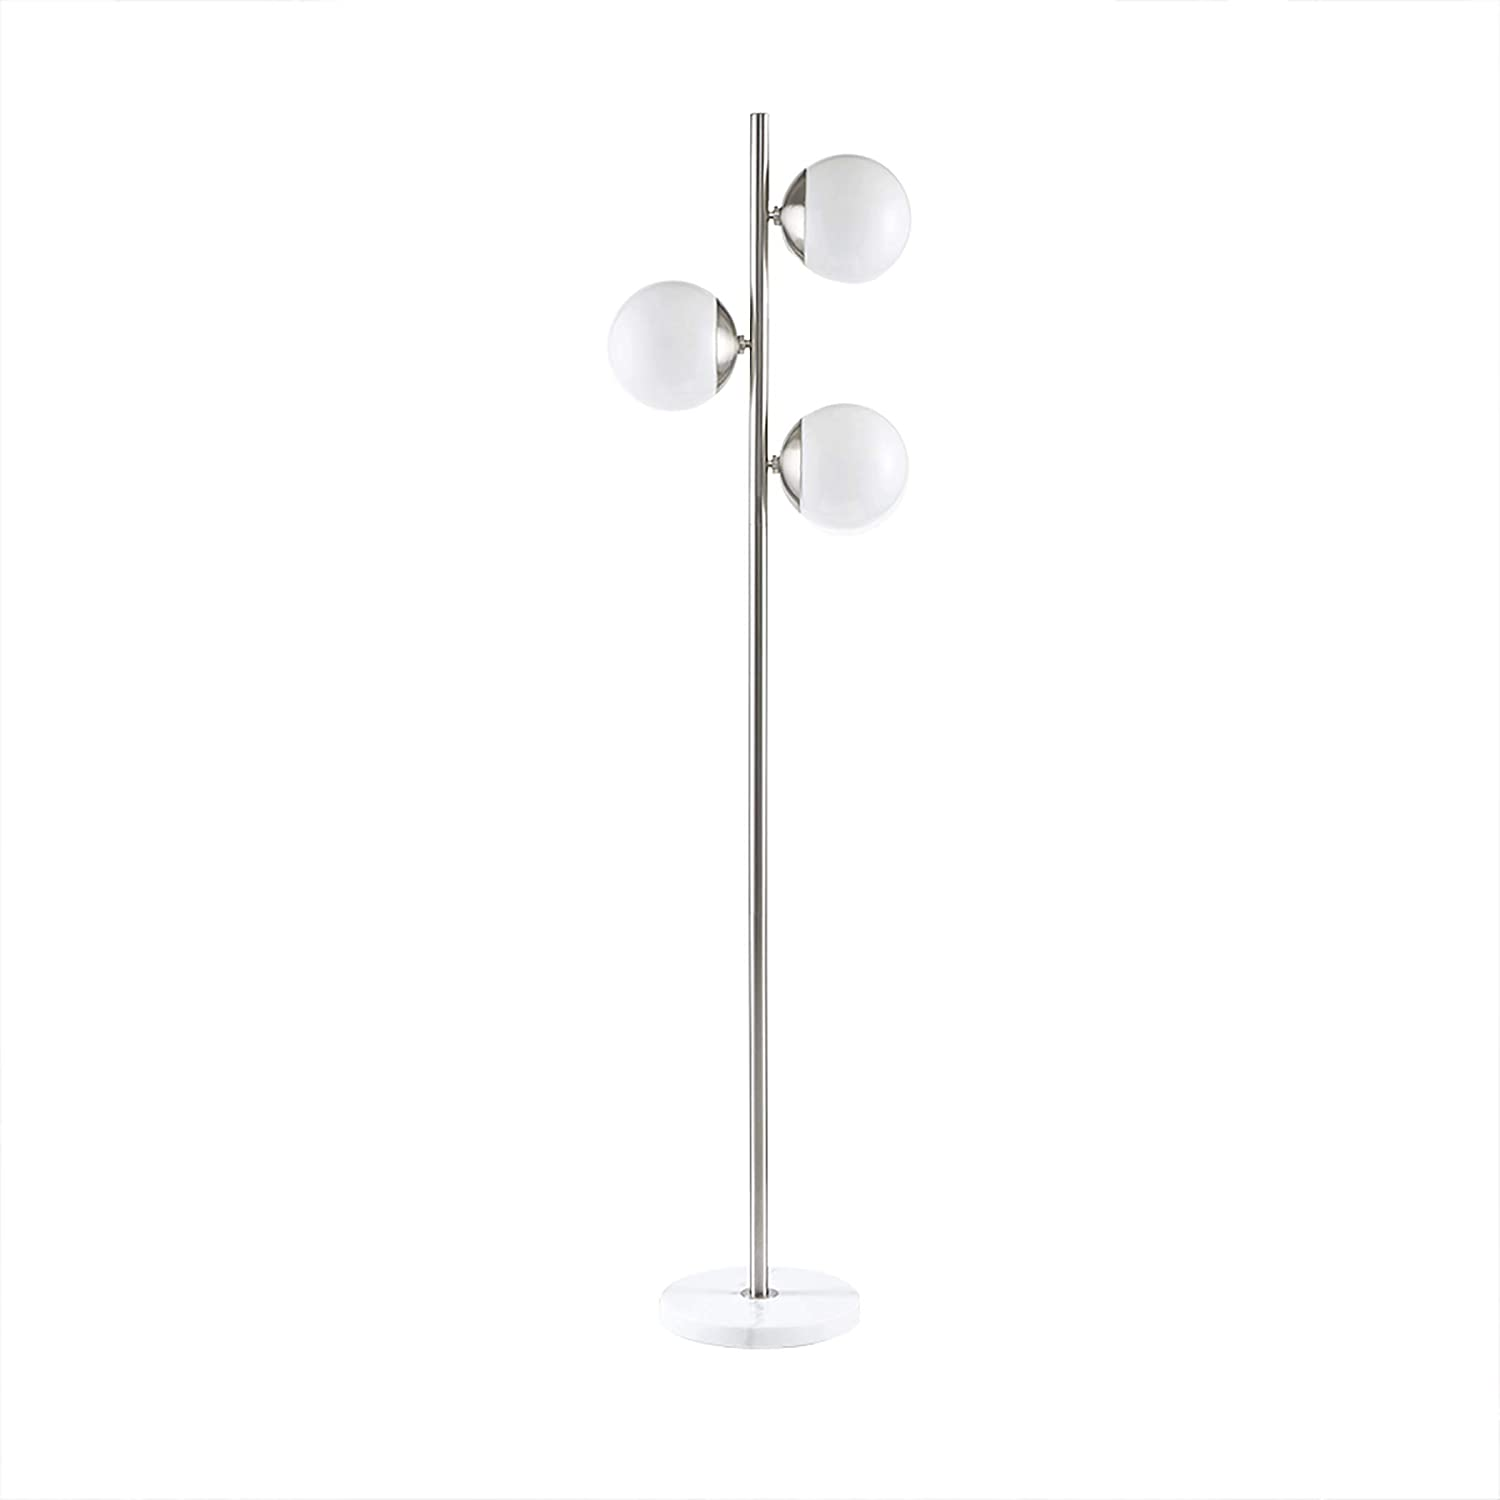 Madison Park Signature MPS154-0102 Holloway Floor Lamp - Modern Luxe Accent Furniture Décor Lighting for Living Room Metal Two-Tone Uplight, White Round Shades and Base, Silver